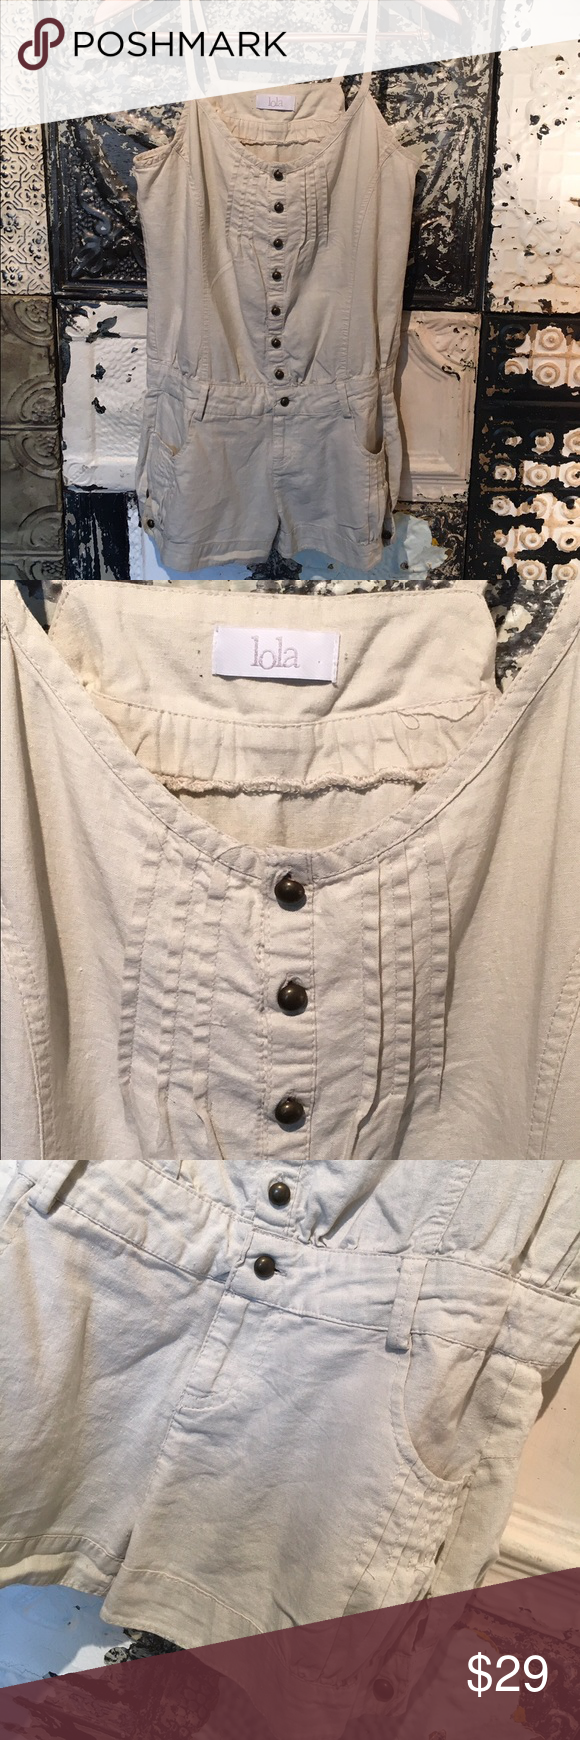 Lola Detailed Romper Detailed romper with pockets on the front and back. Pair with your favorite bralette and sandals. Brand: Lola. Size Small. Great Condition. No Trades. Shorts Jean Shorts